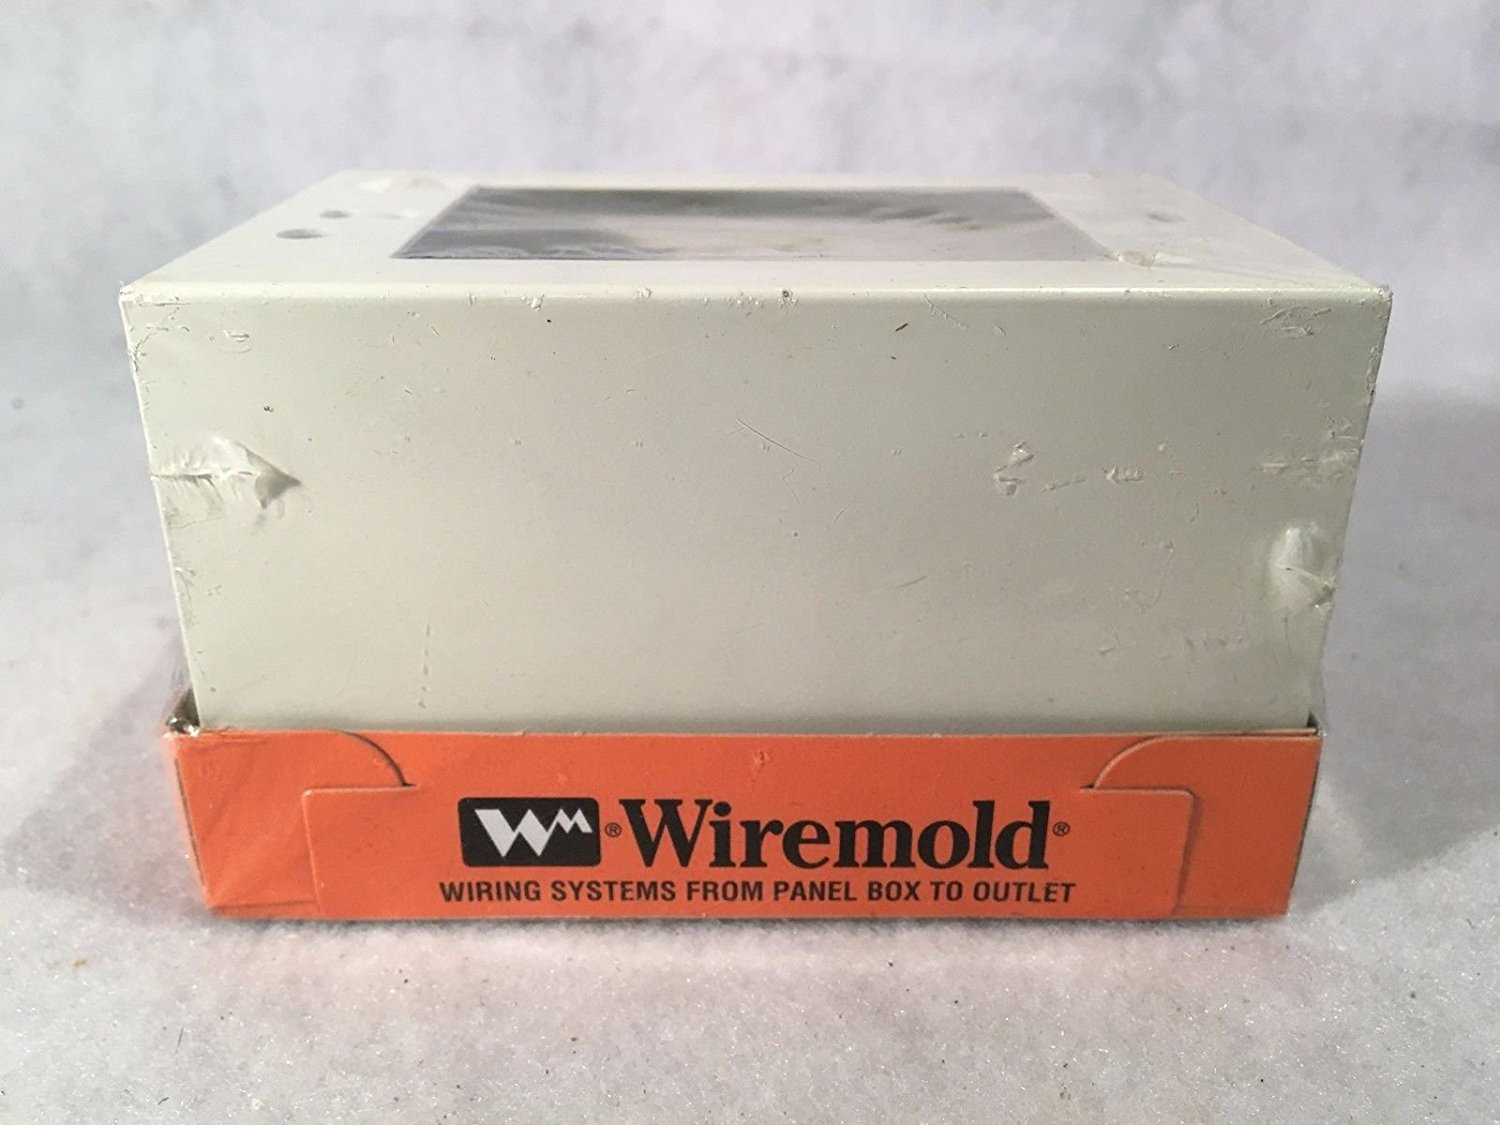 Cheap Wiremold Box, find Wiremold Box deals on line at Alibaba.com